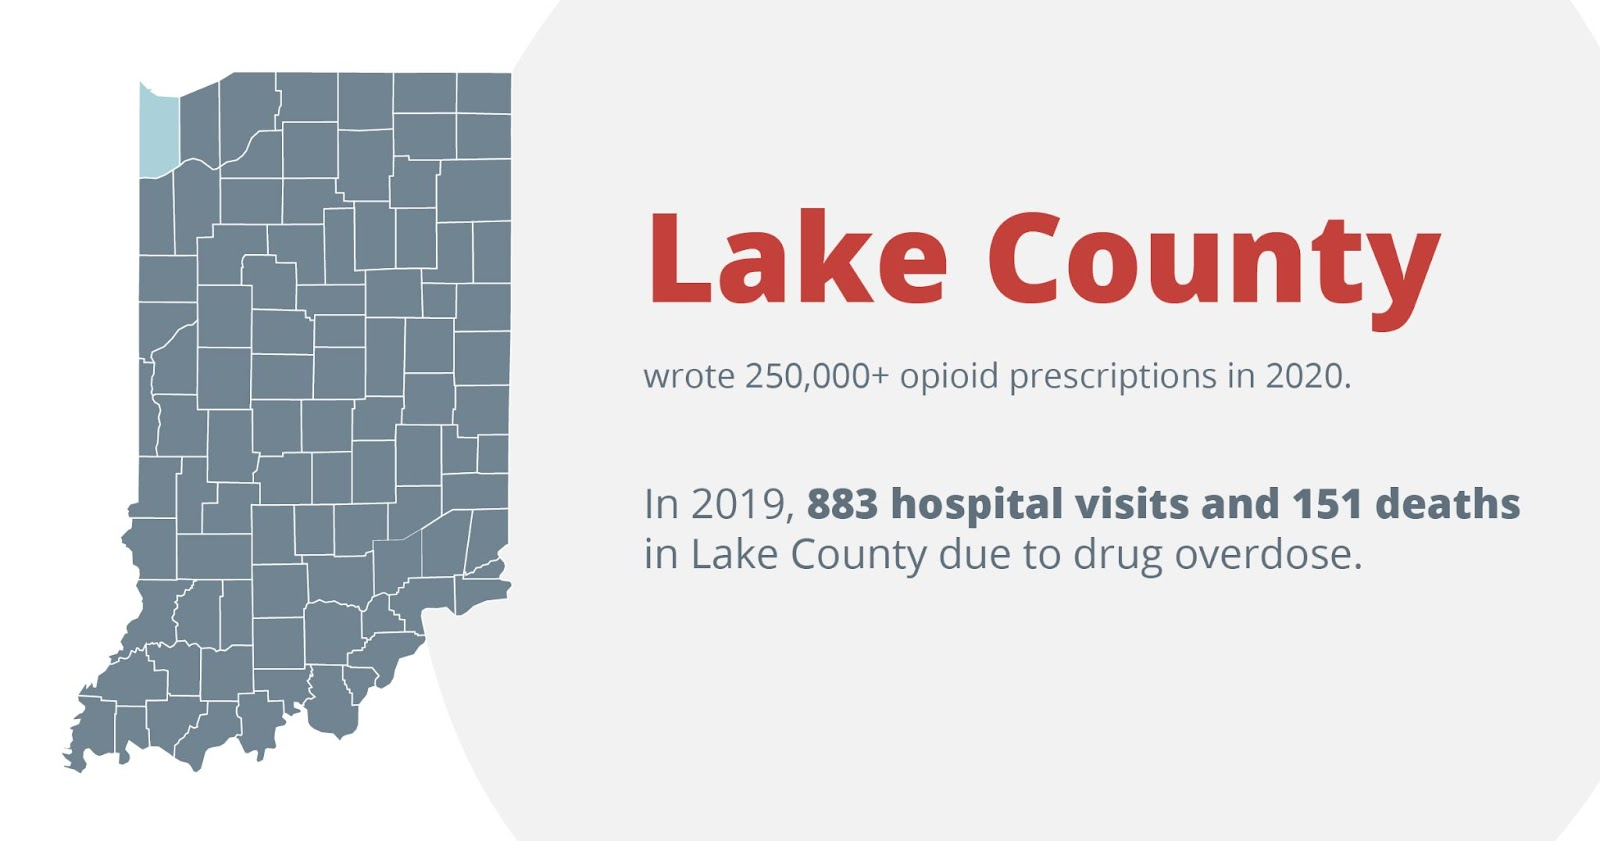 Lake county wrote 250,000+ opioid prescriptions in 2020. In 2019, 883 hospital visits and 151 deaths in lake county due to drug overdose